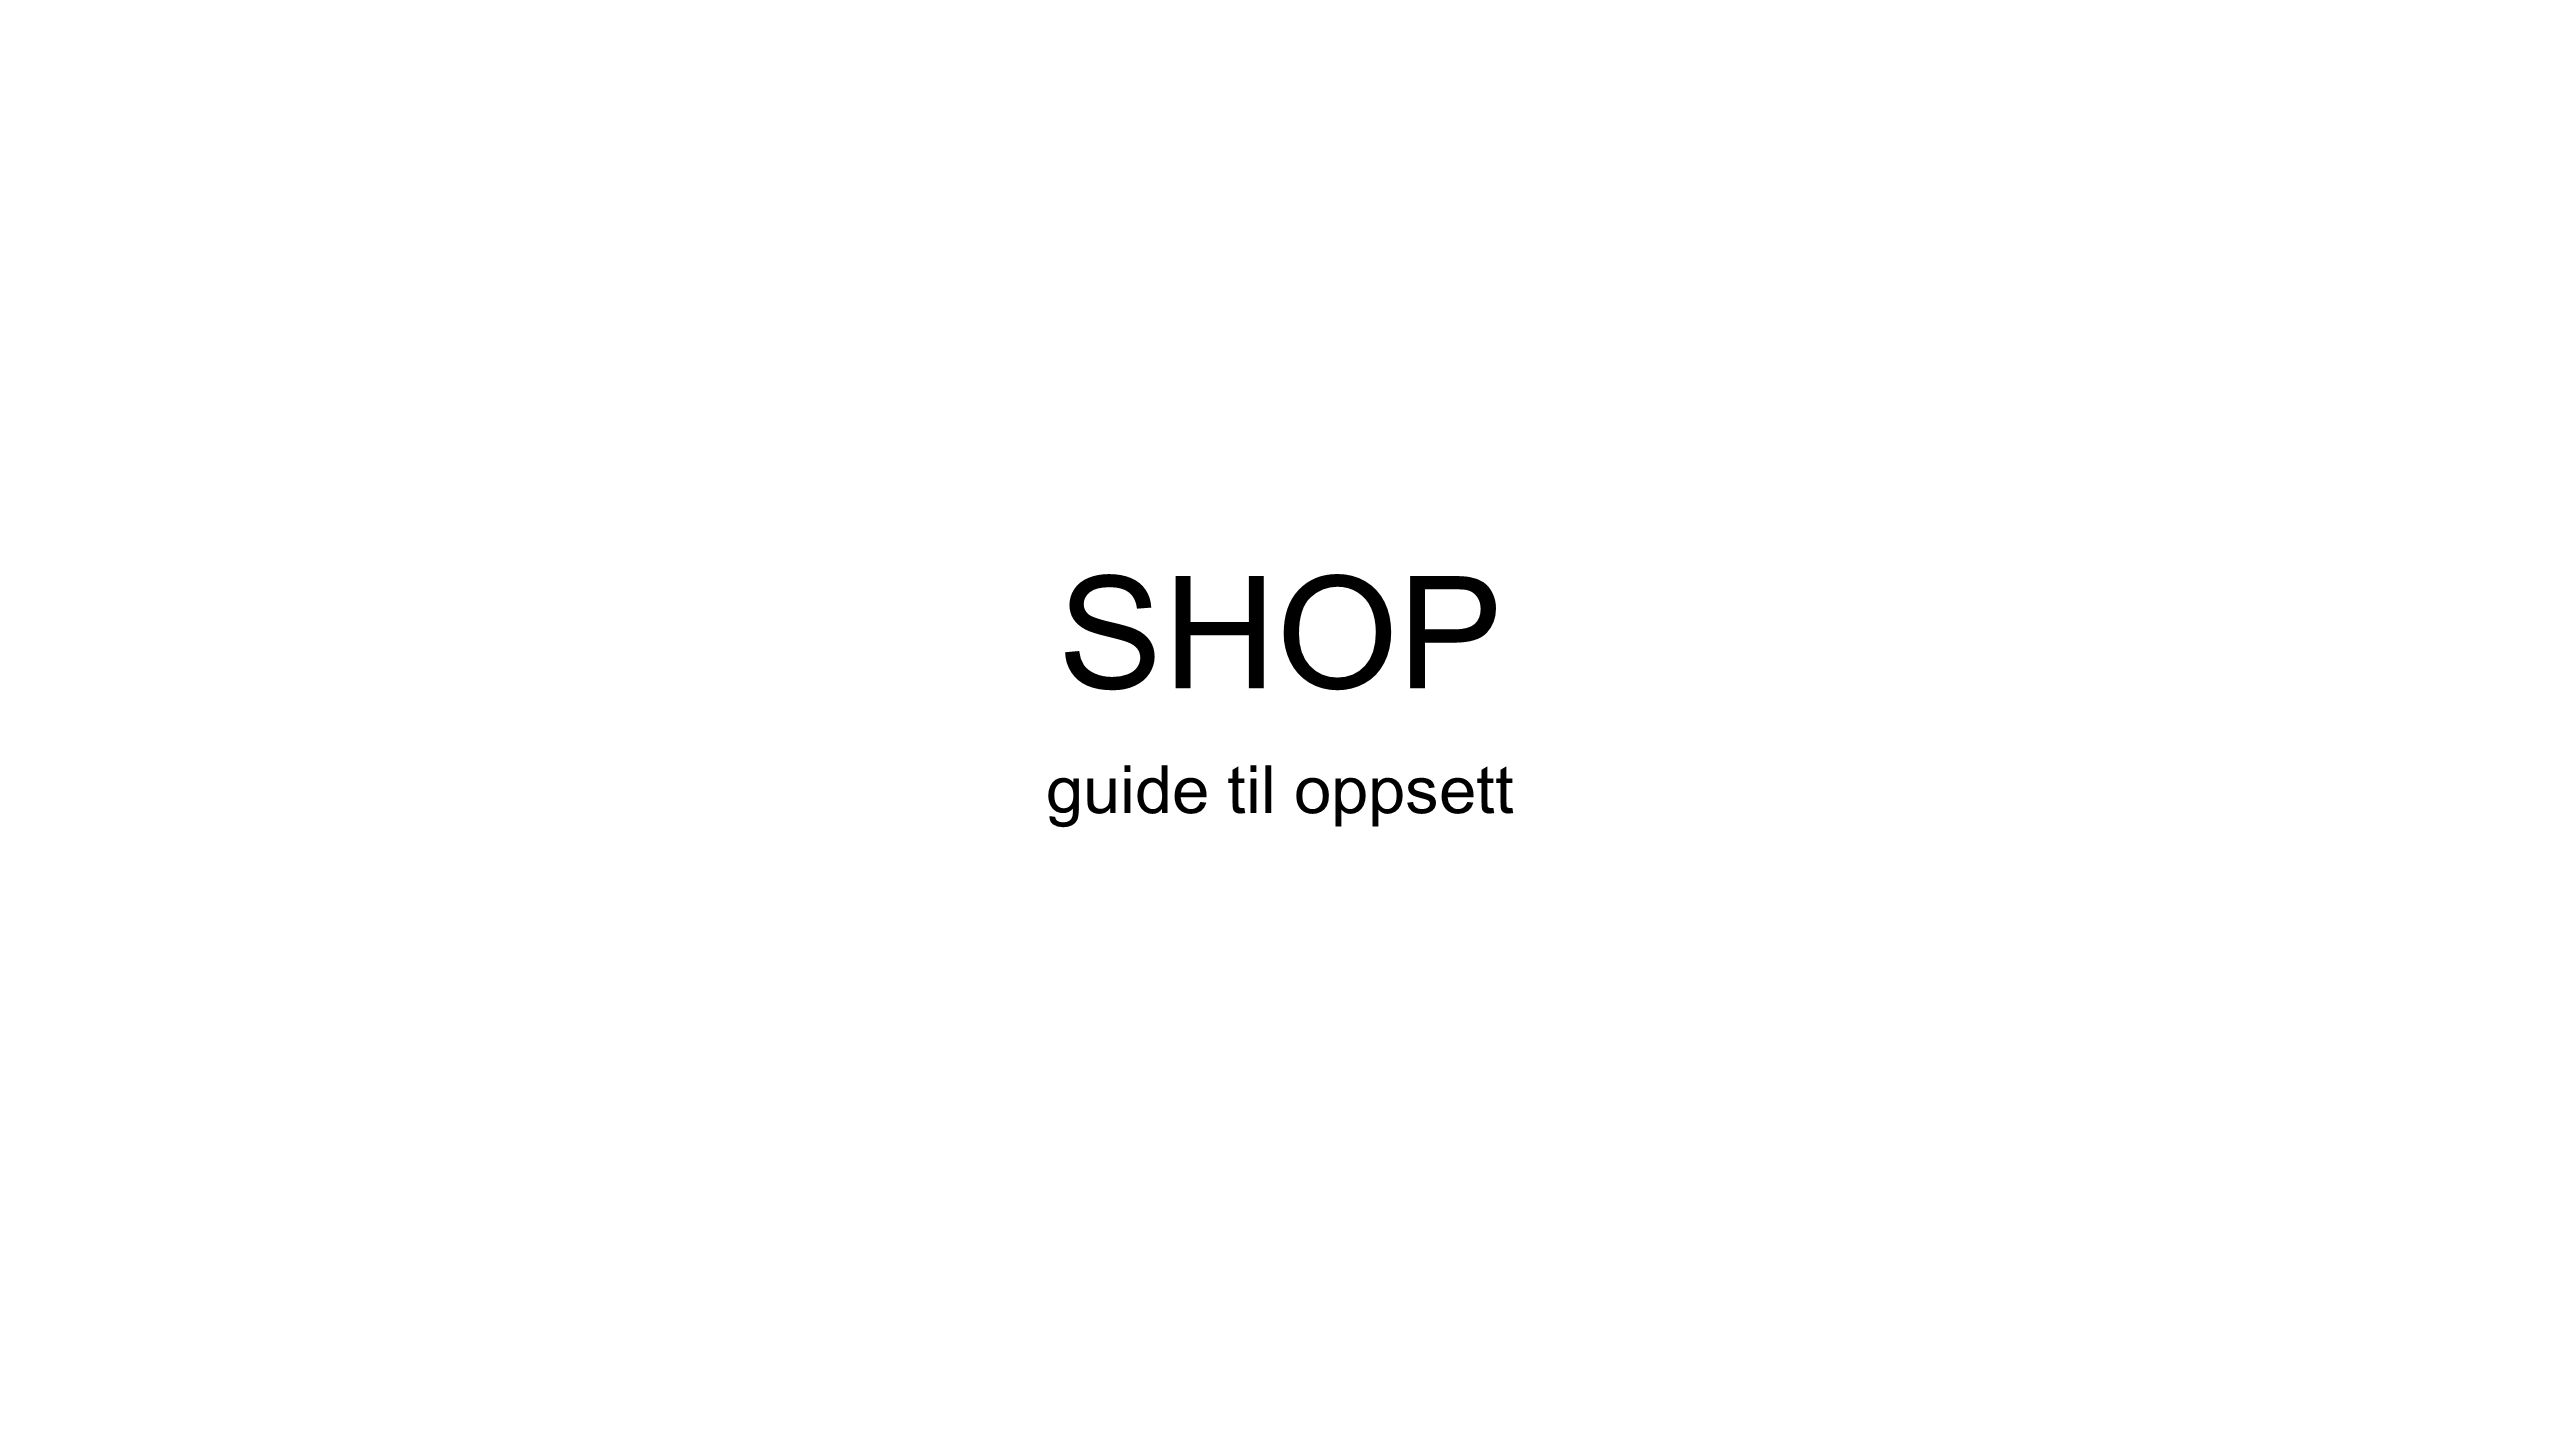 SHOP guide til oppsett